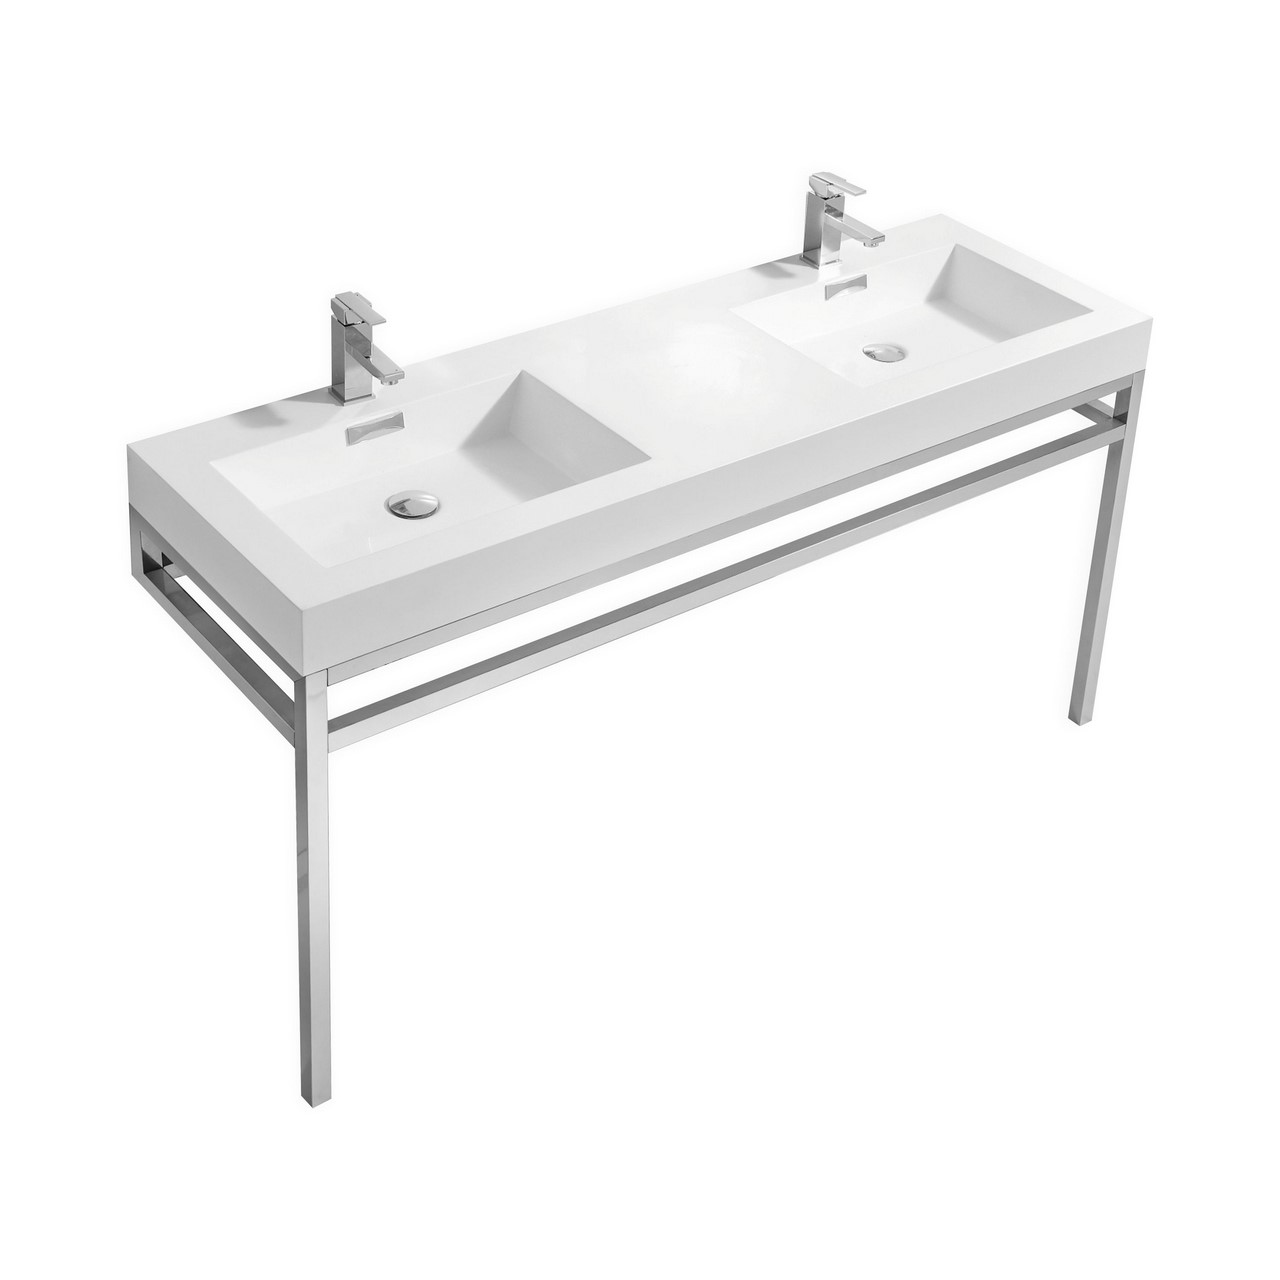 "Haus 60"" Double Sink Stainless Steel Console w/ White"